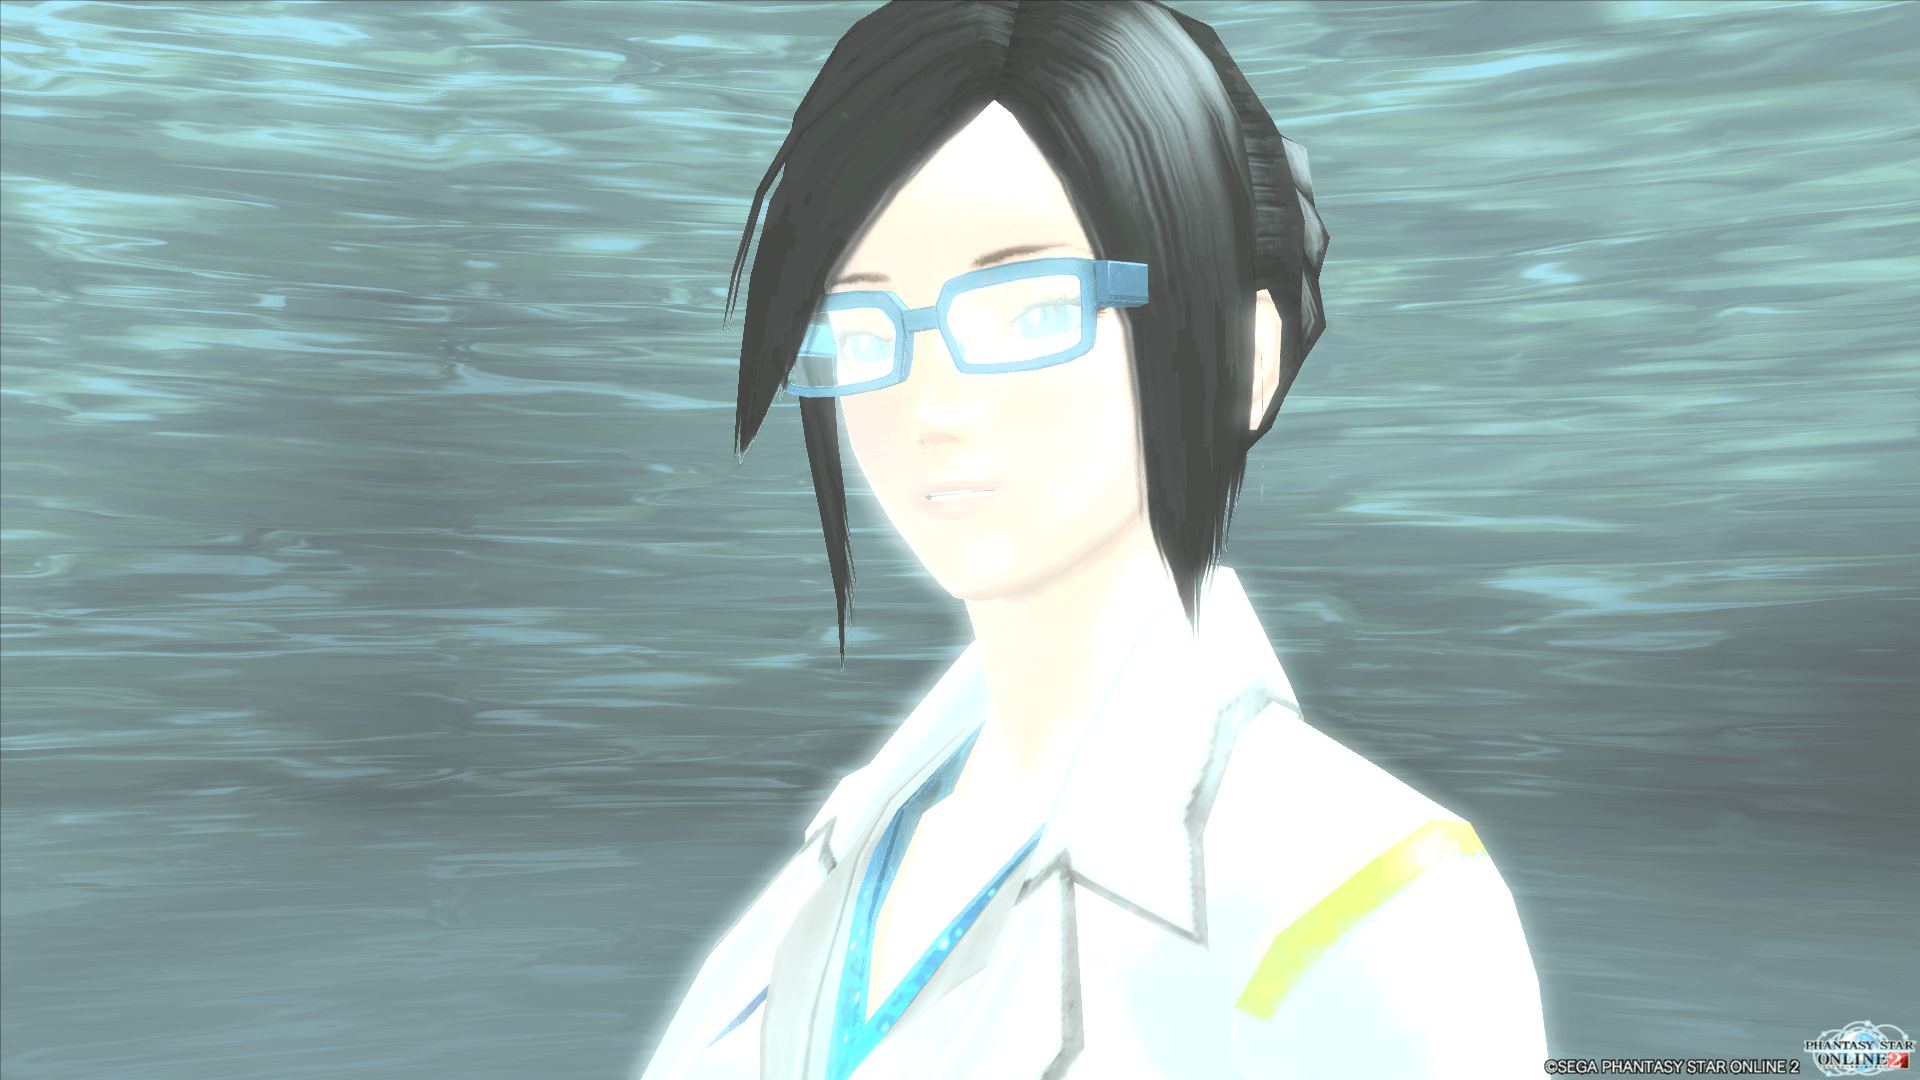 pso20151018_001114_015.png